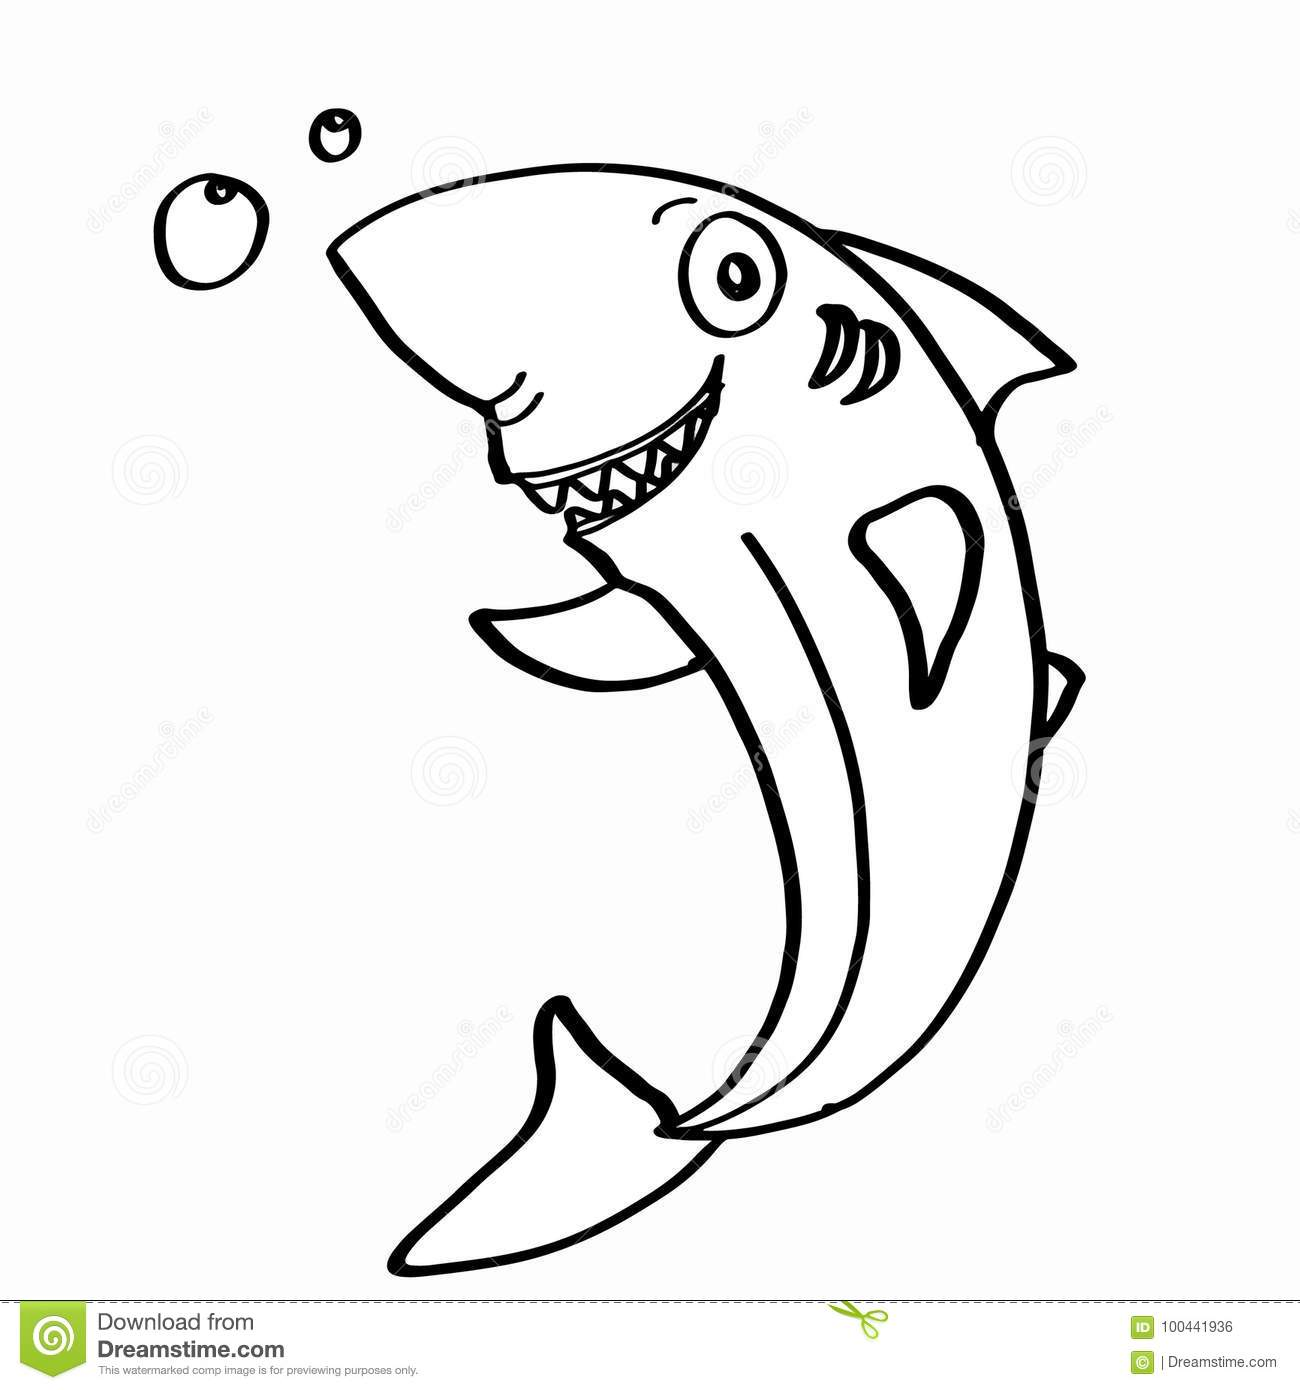 Cute shark coloring stock vector. Illustration of smile - 100441936